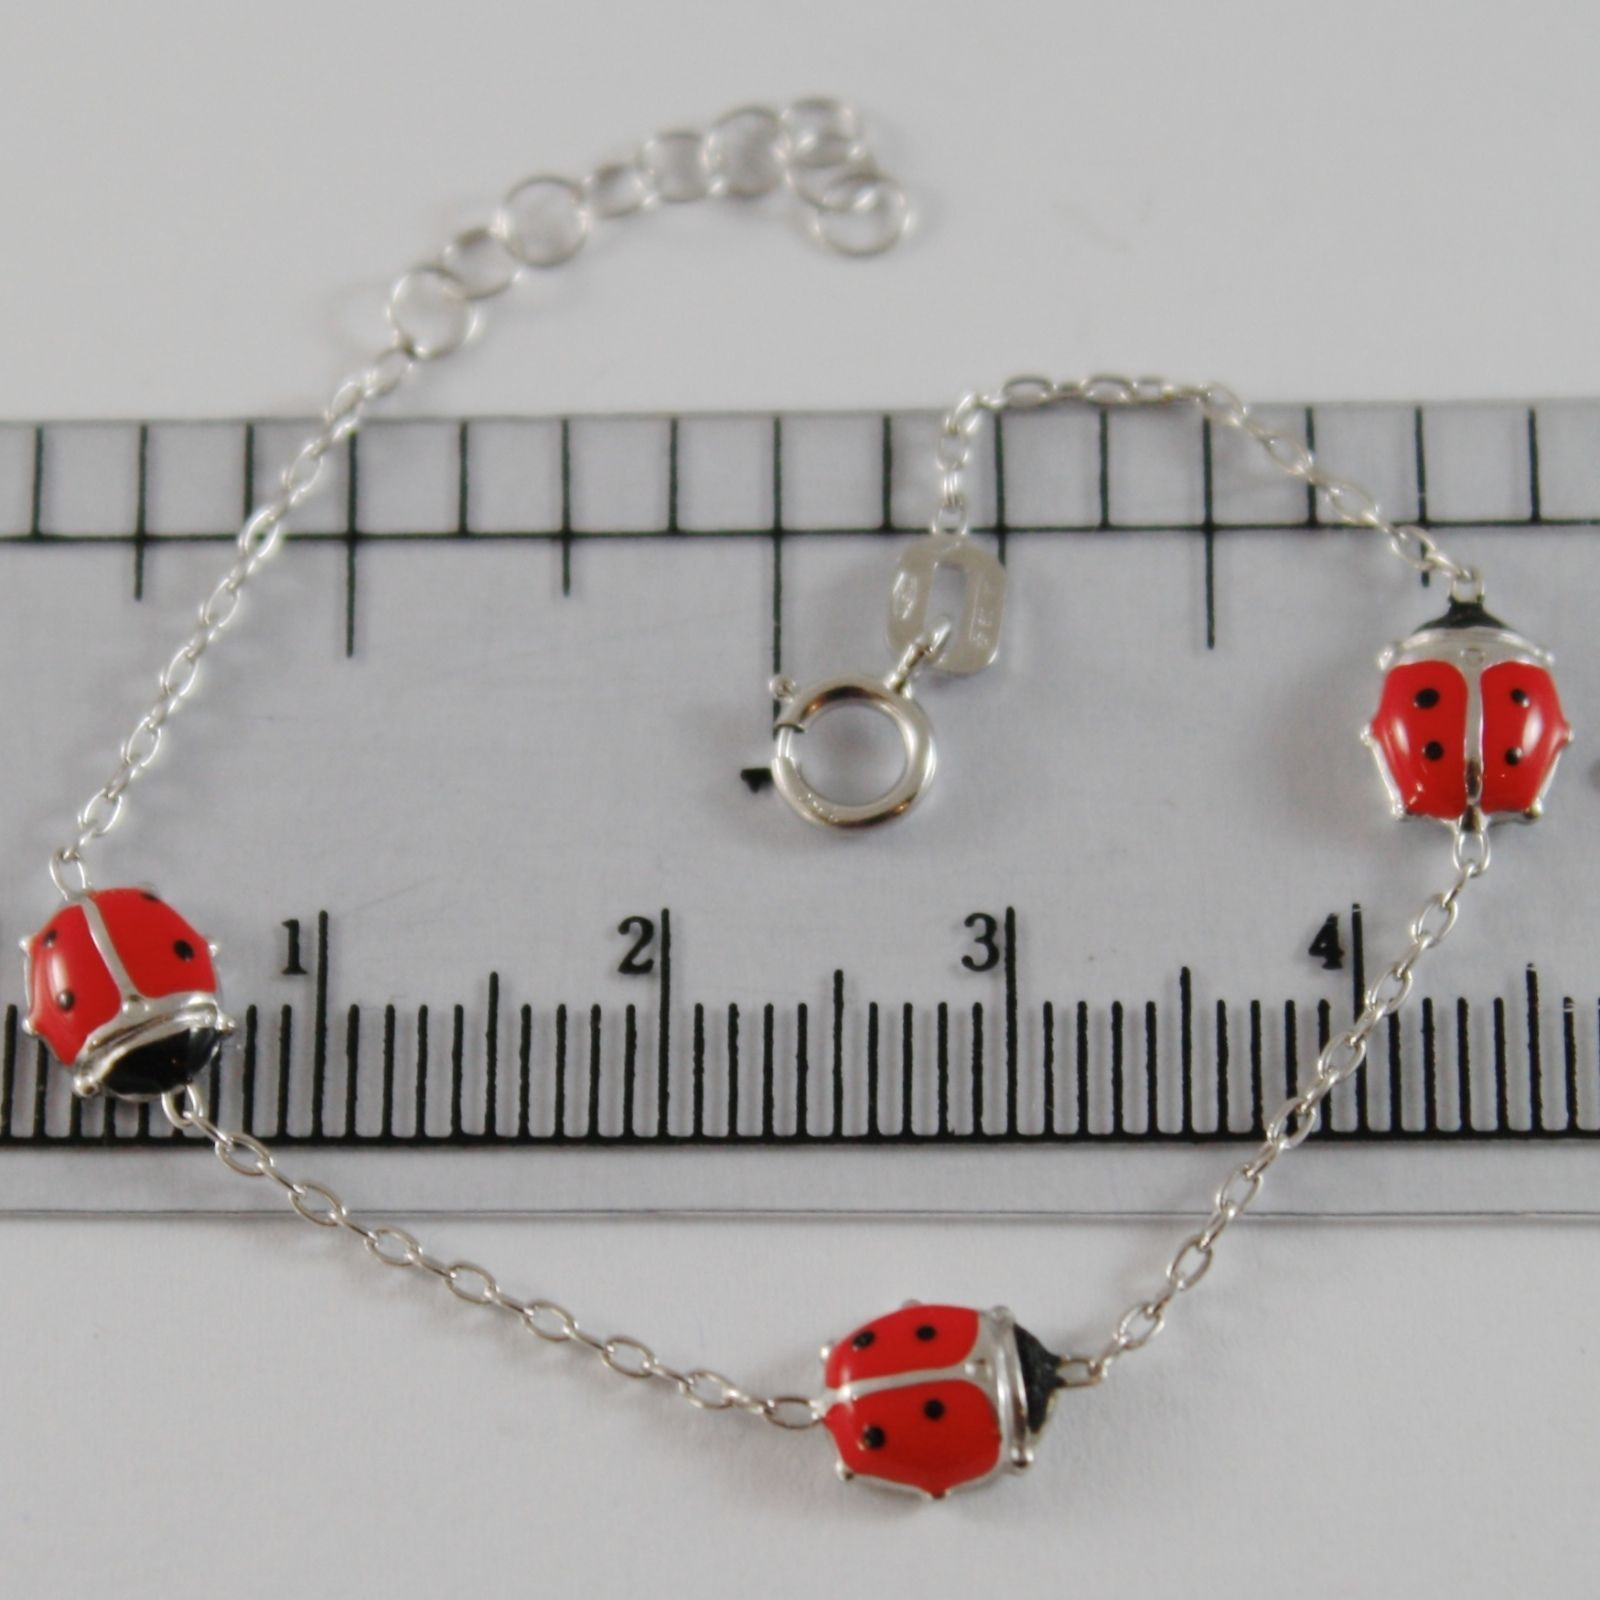 18K WHITE GOLD GIRL BRACELET 5.50 GLAZED LADYBIRD LADYBUG, ENAMEL, MADE IN ITALY